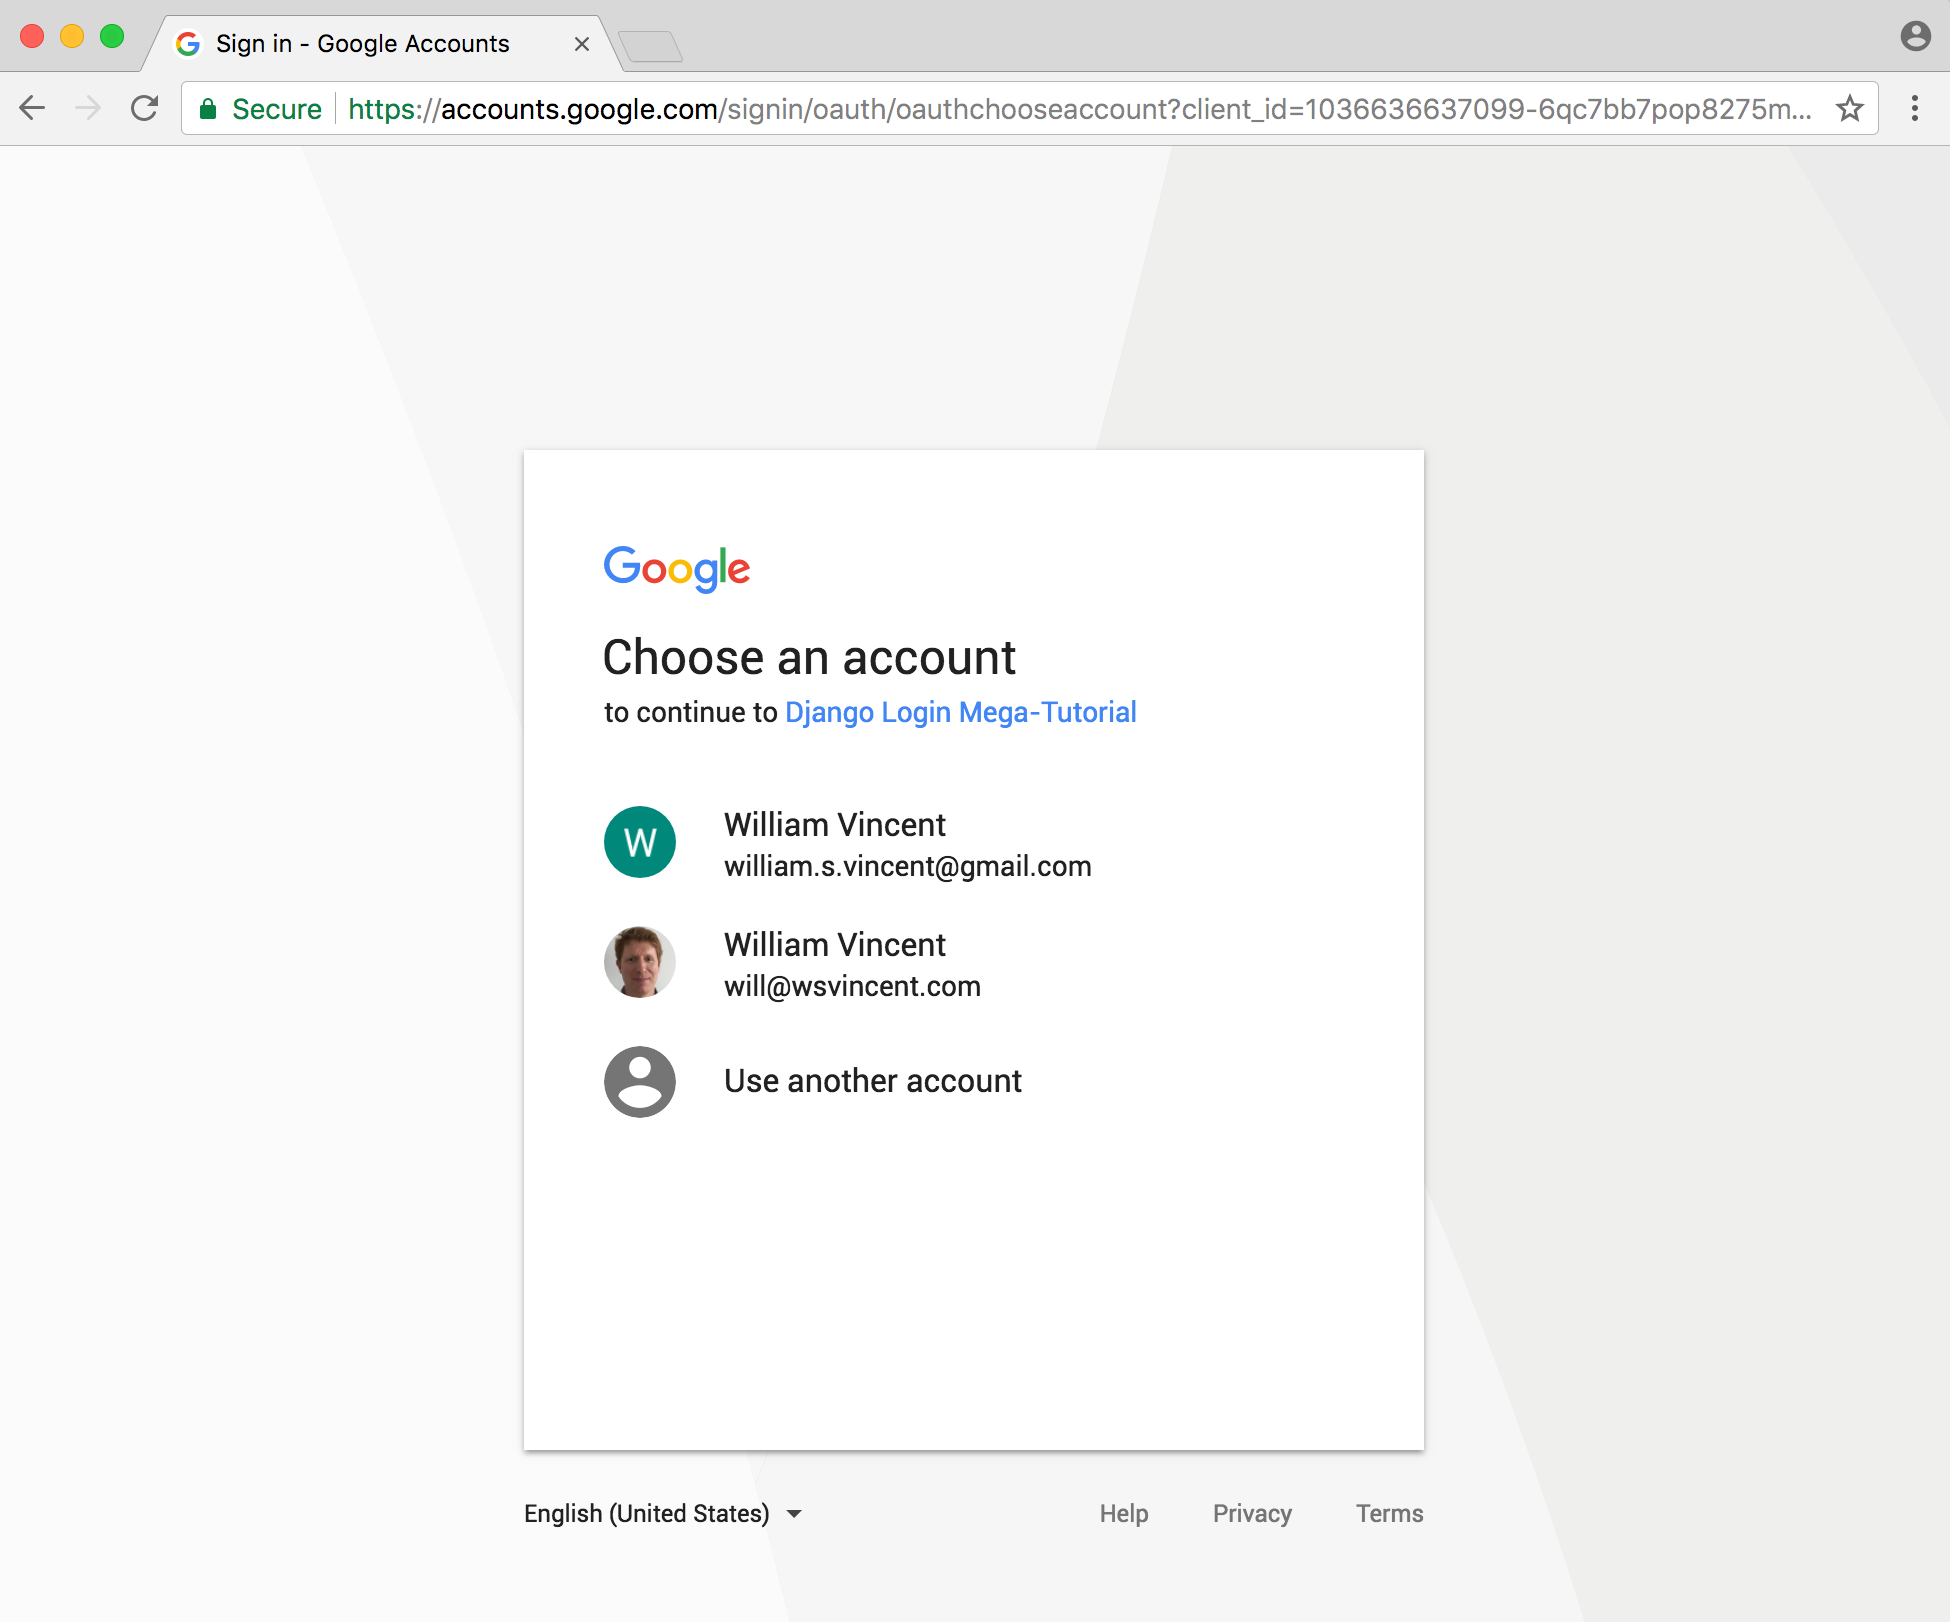 Google signup page